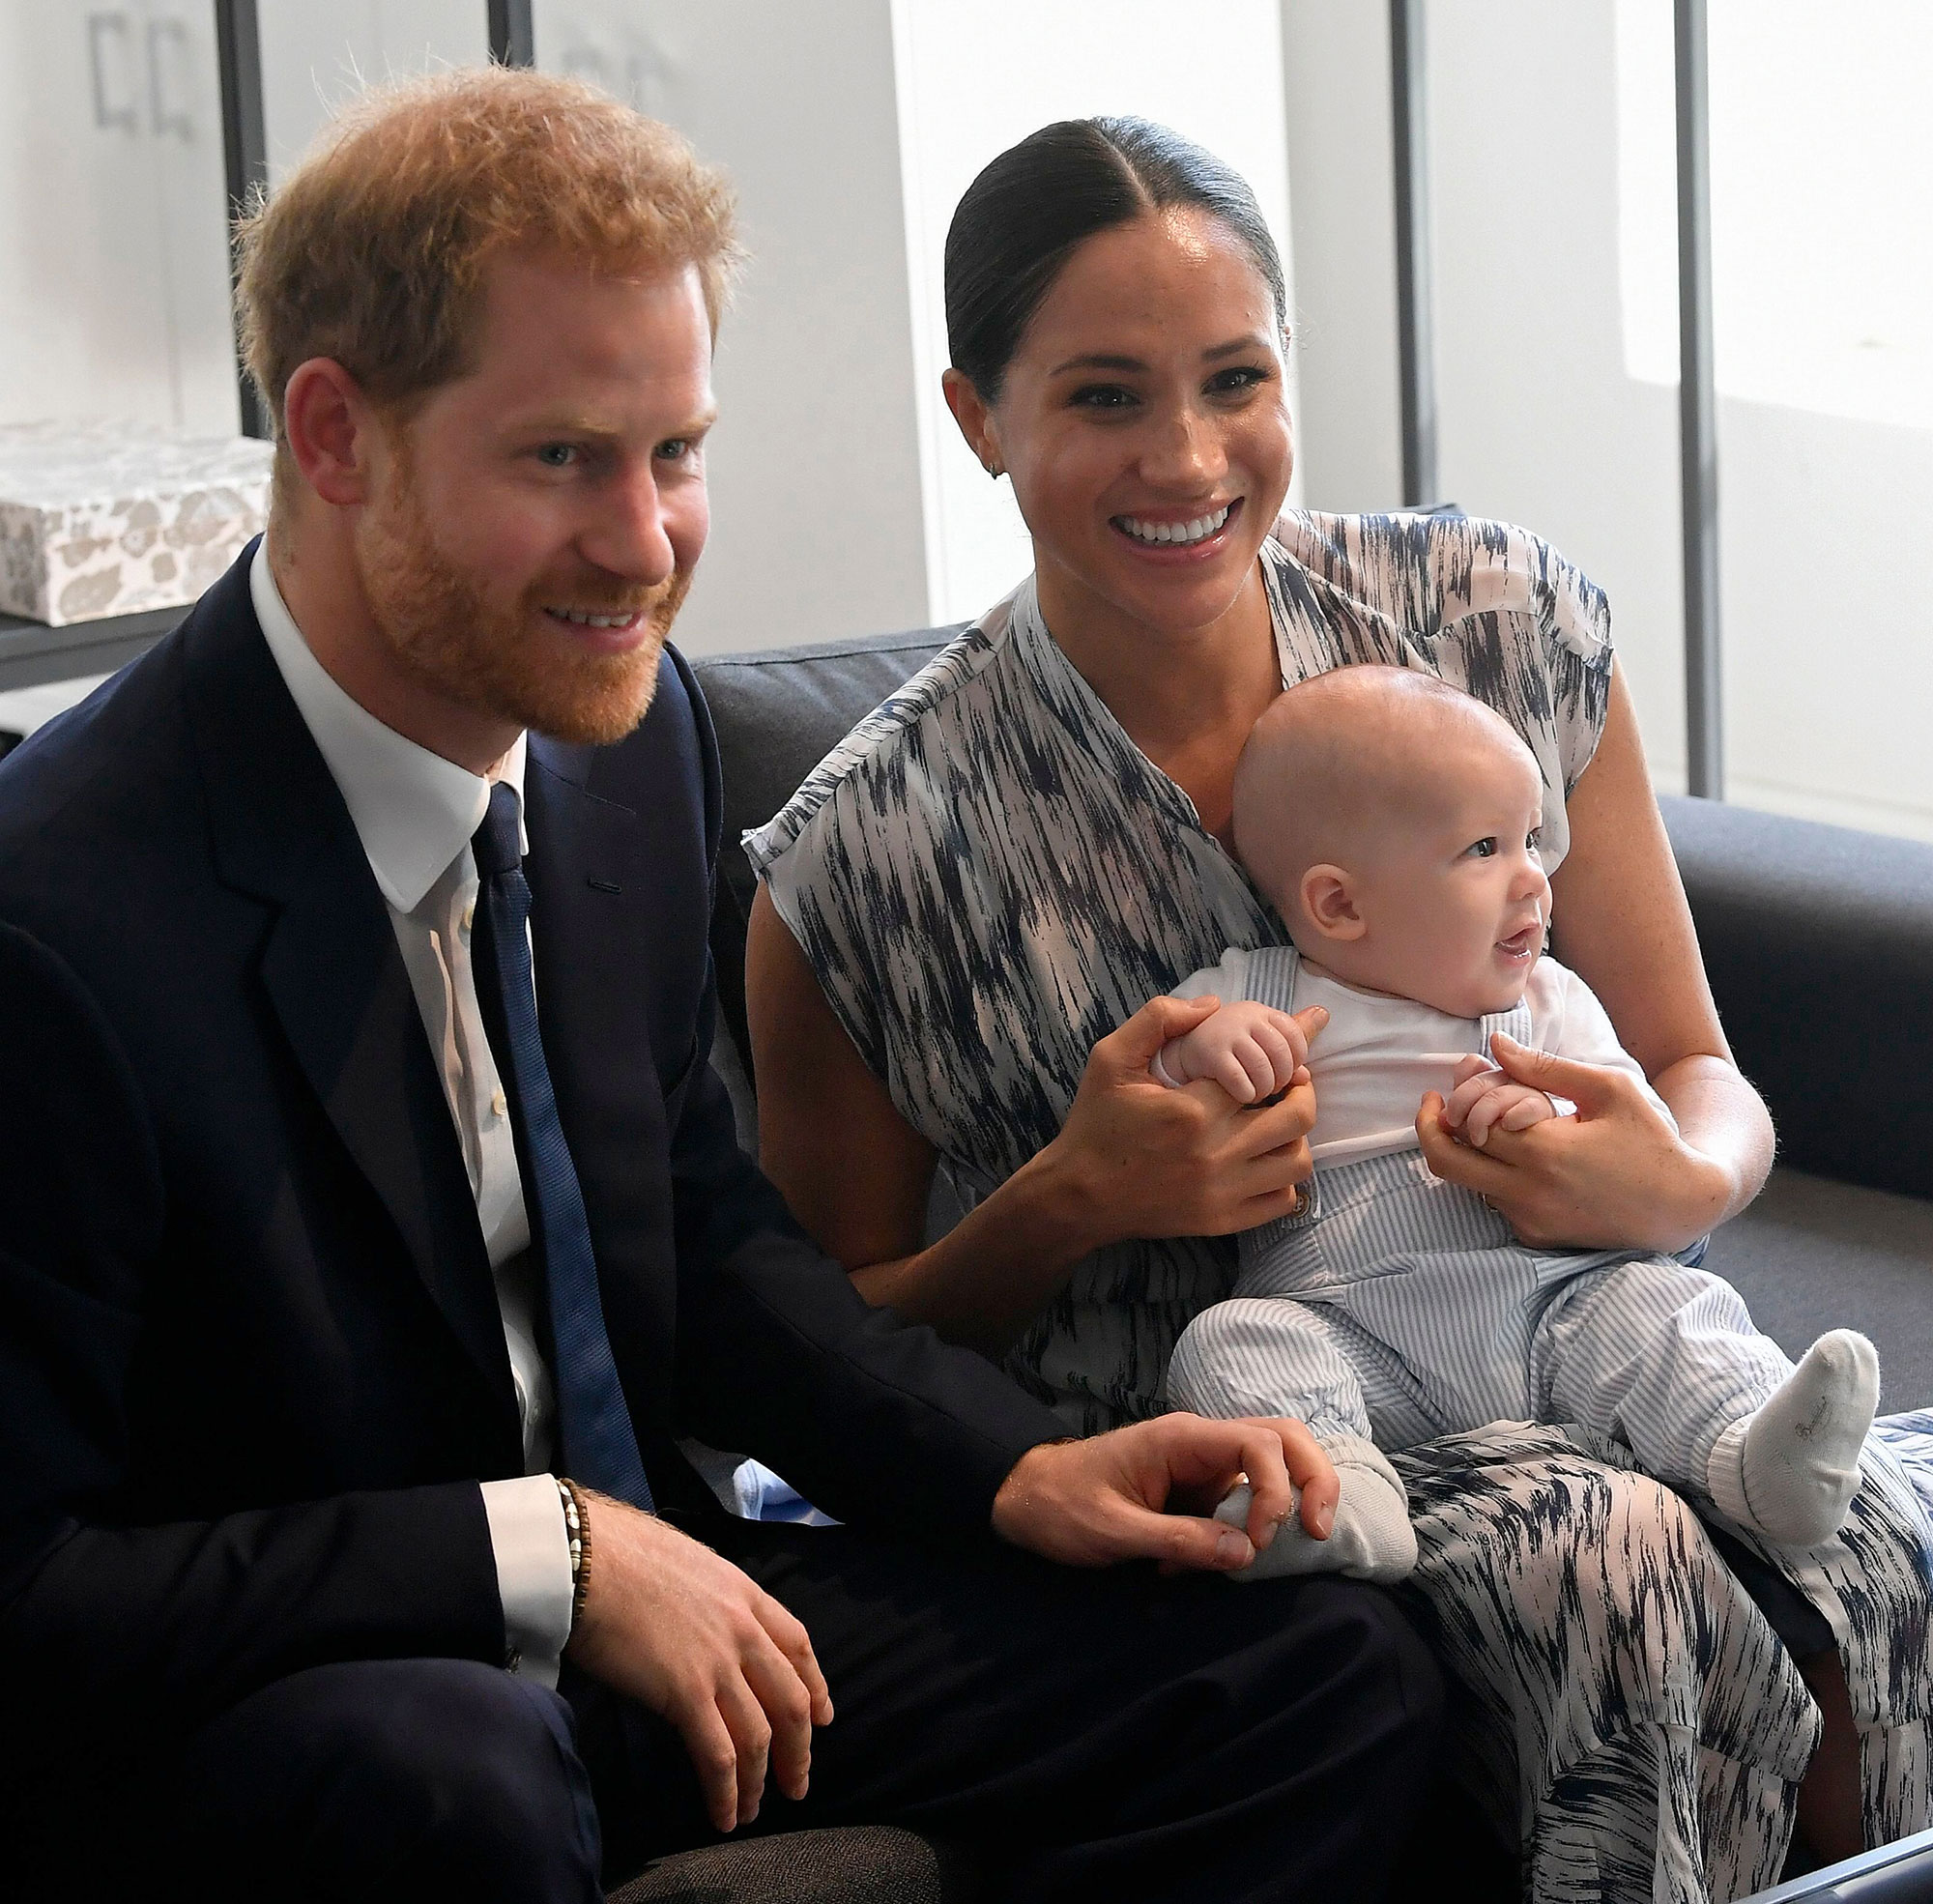 Prince Harry and Meghan Markle Son Archie Talking